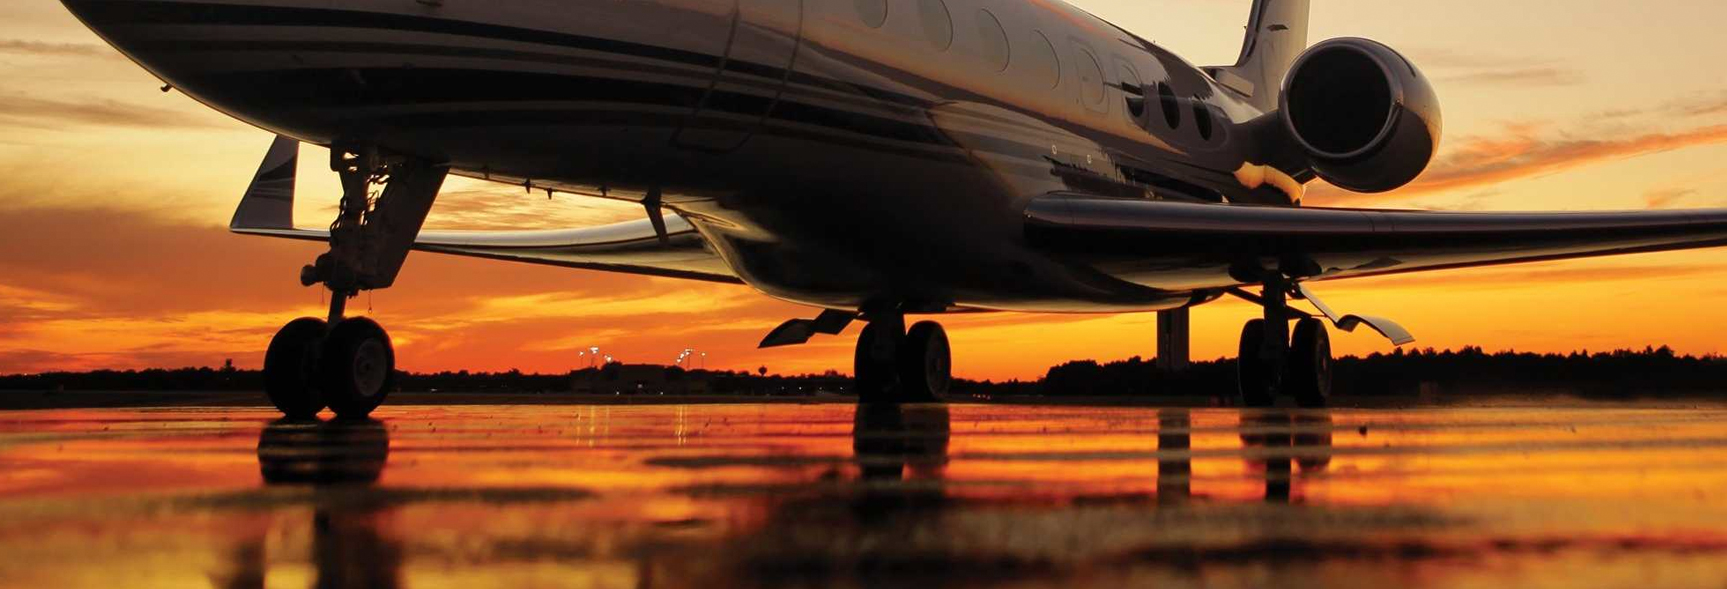 Ibiza Private Jet Rental Services – Ibiza Loyale